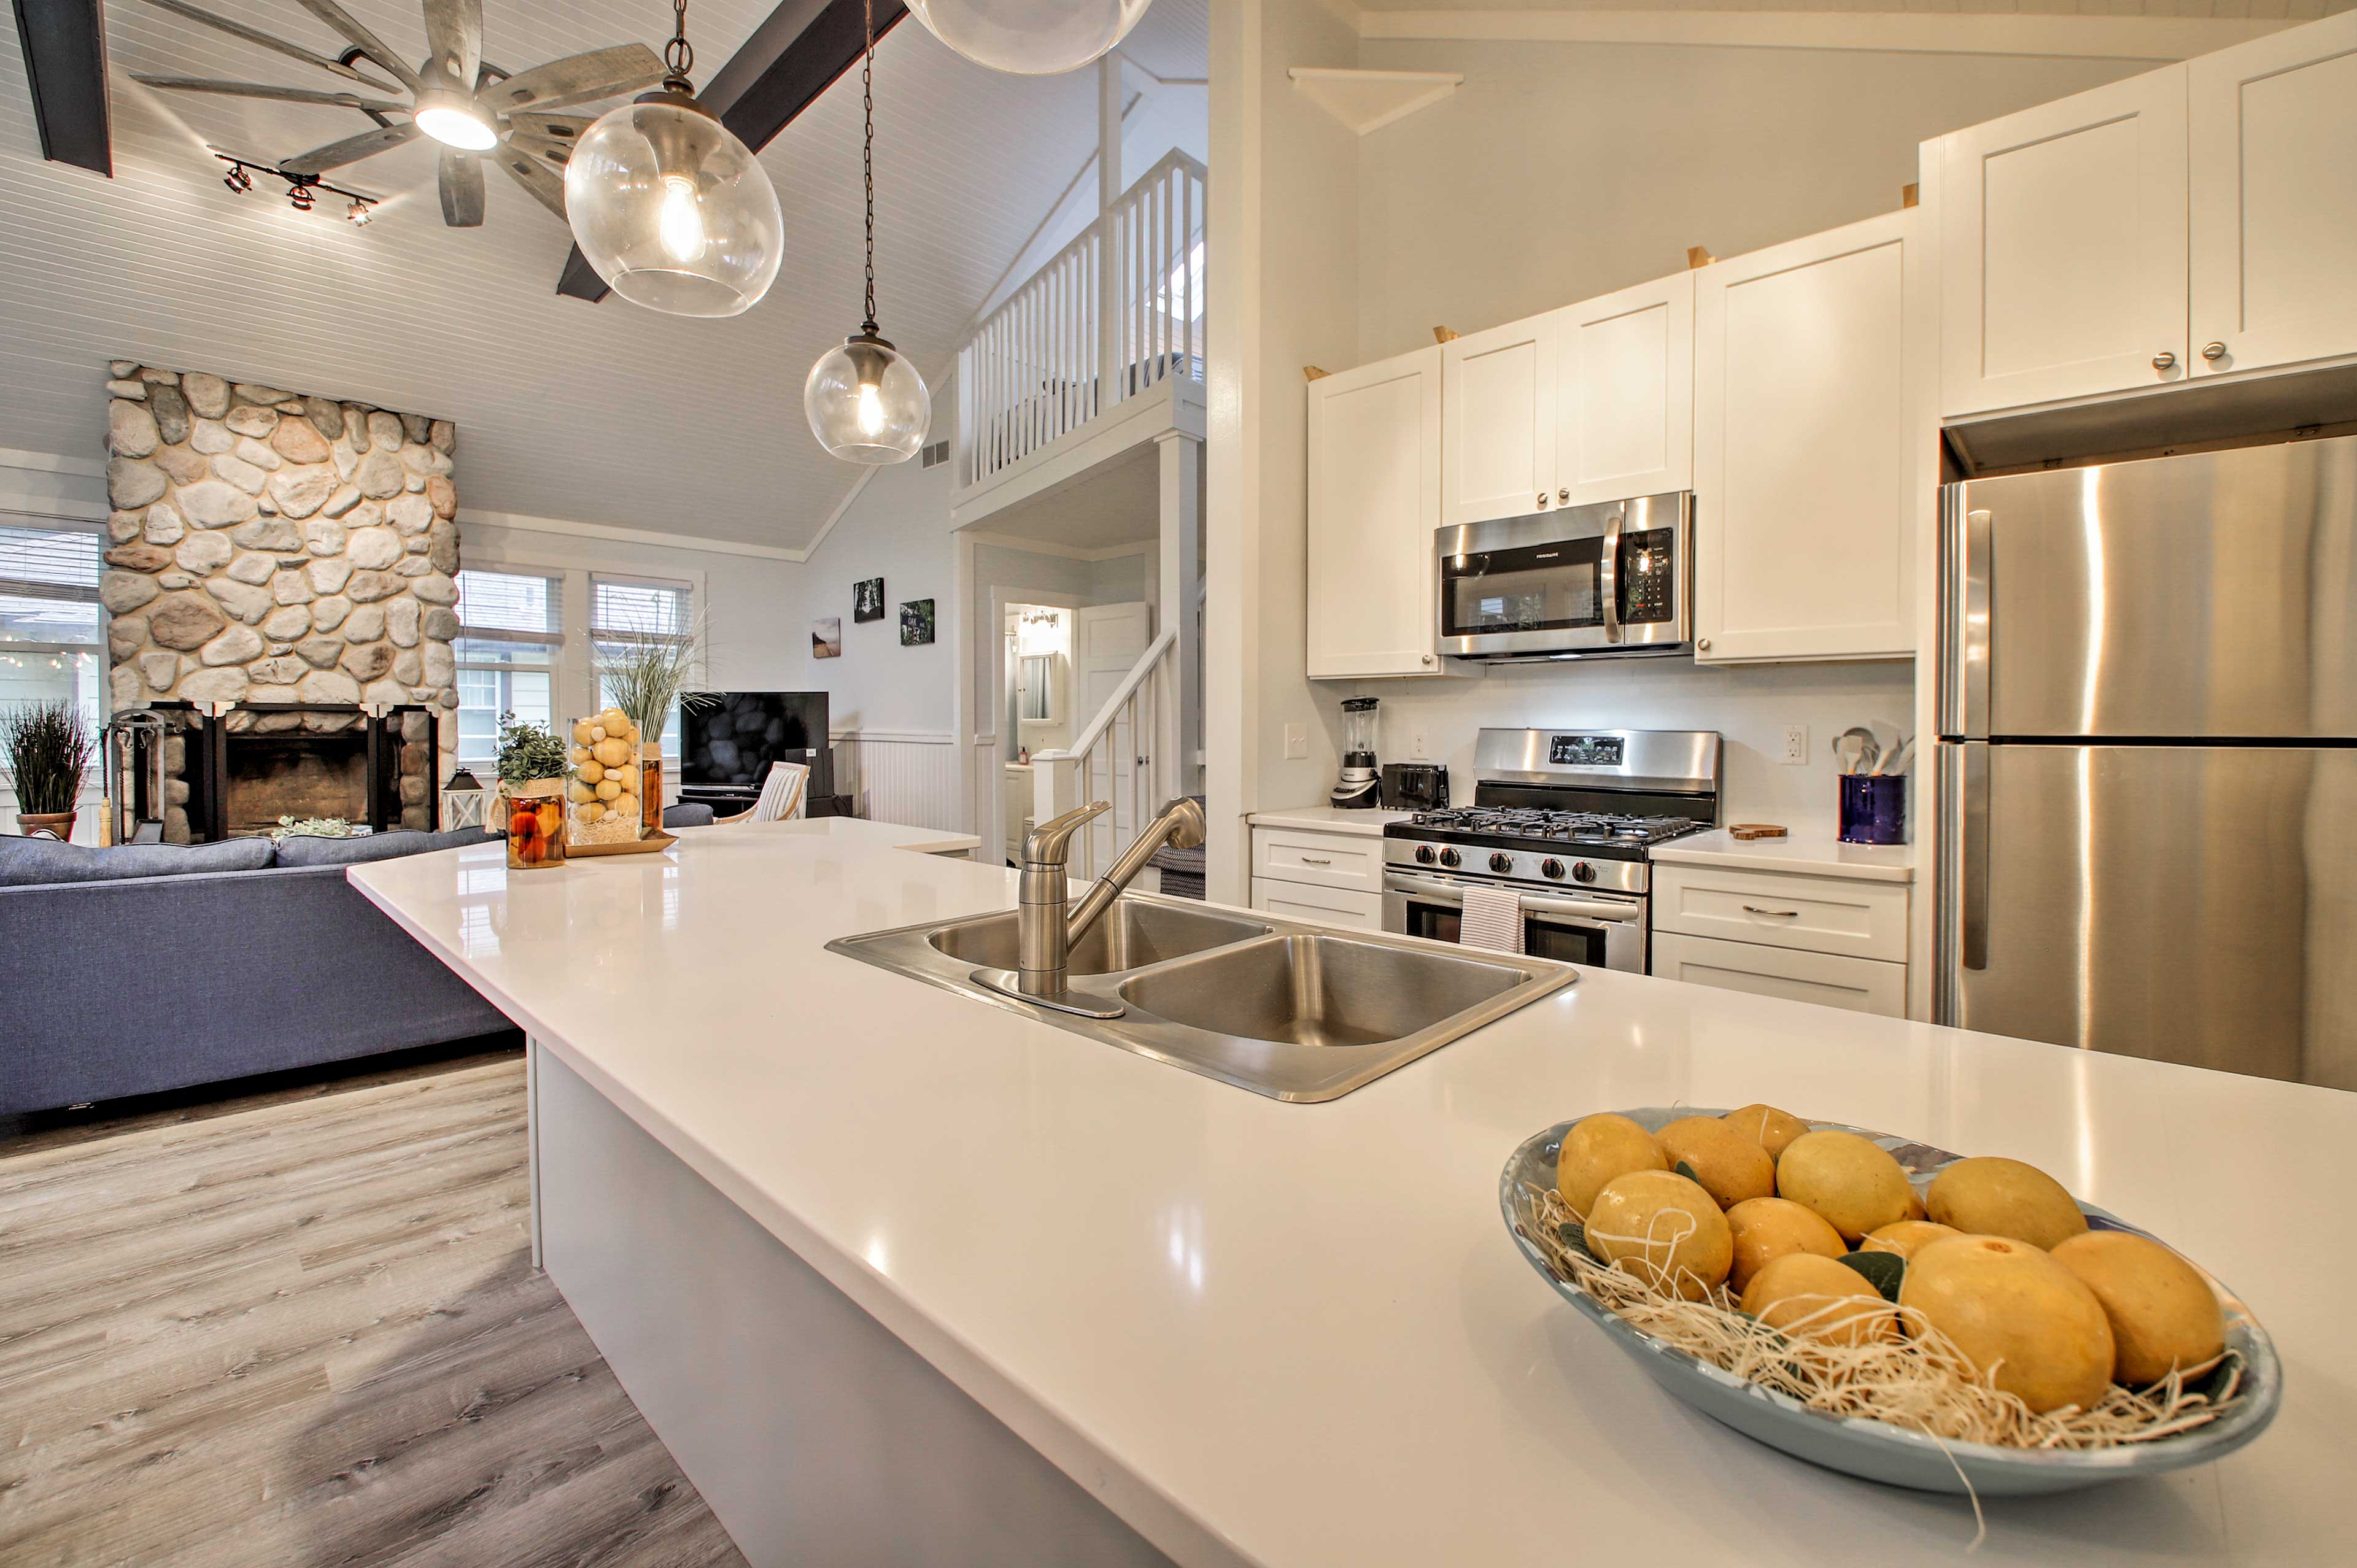 Stainless steel appliances and sleek counters highlight the kitchen.